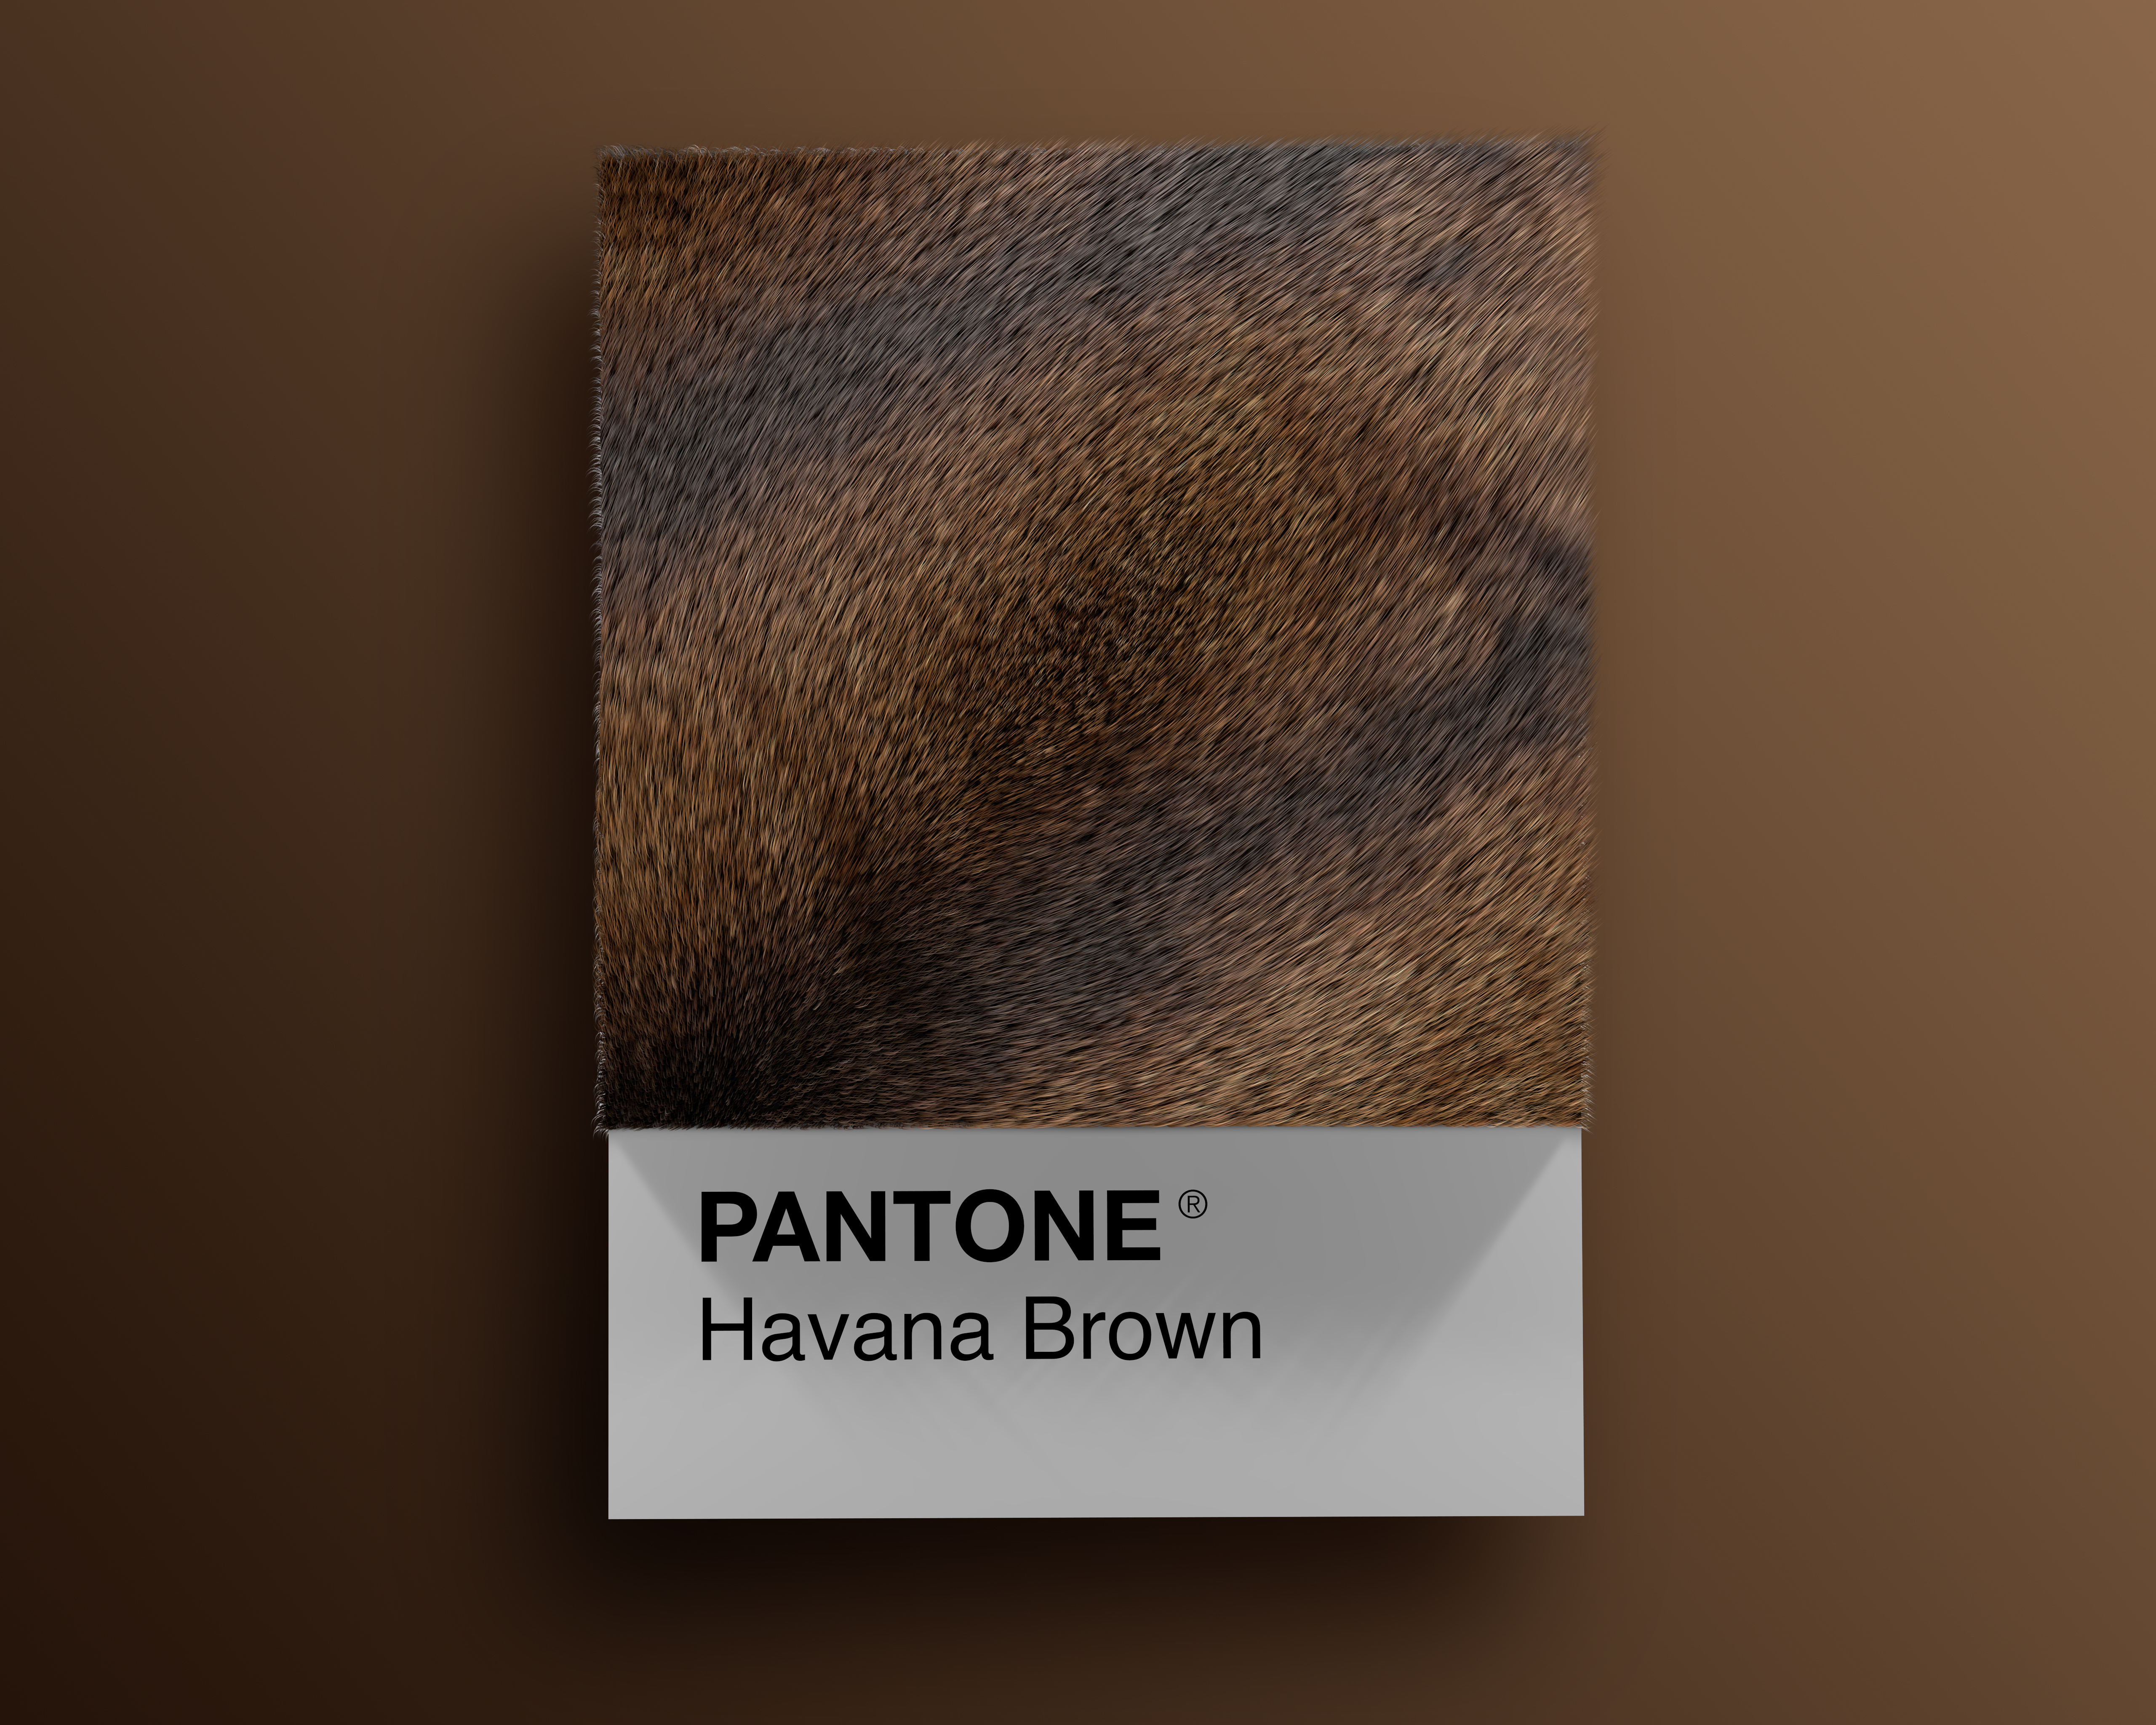 Alessio D'Amico - Cat breeds as Pantone | Collater.al 8